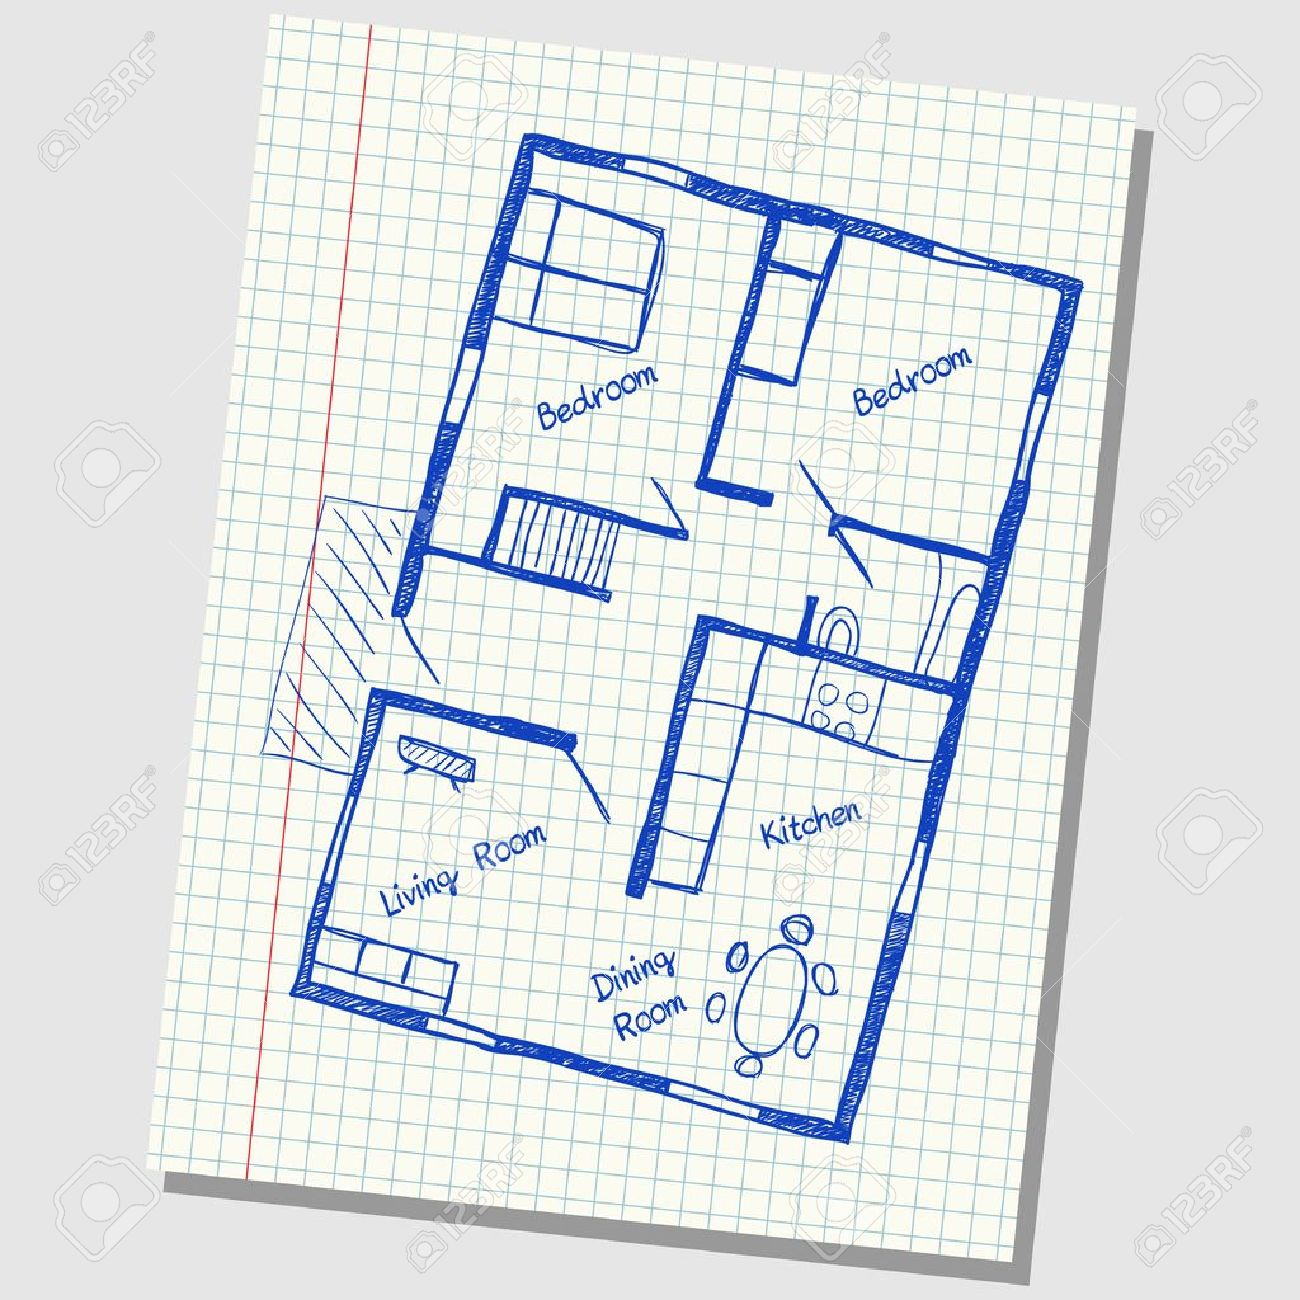 Illustration of floor plan doodle on school squared paper Stock Vector - 19846684